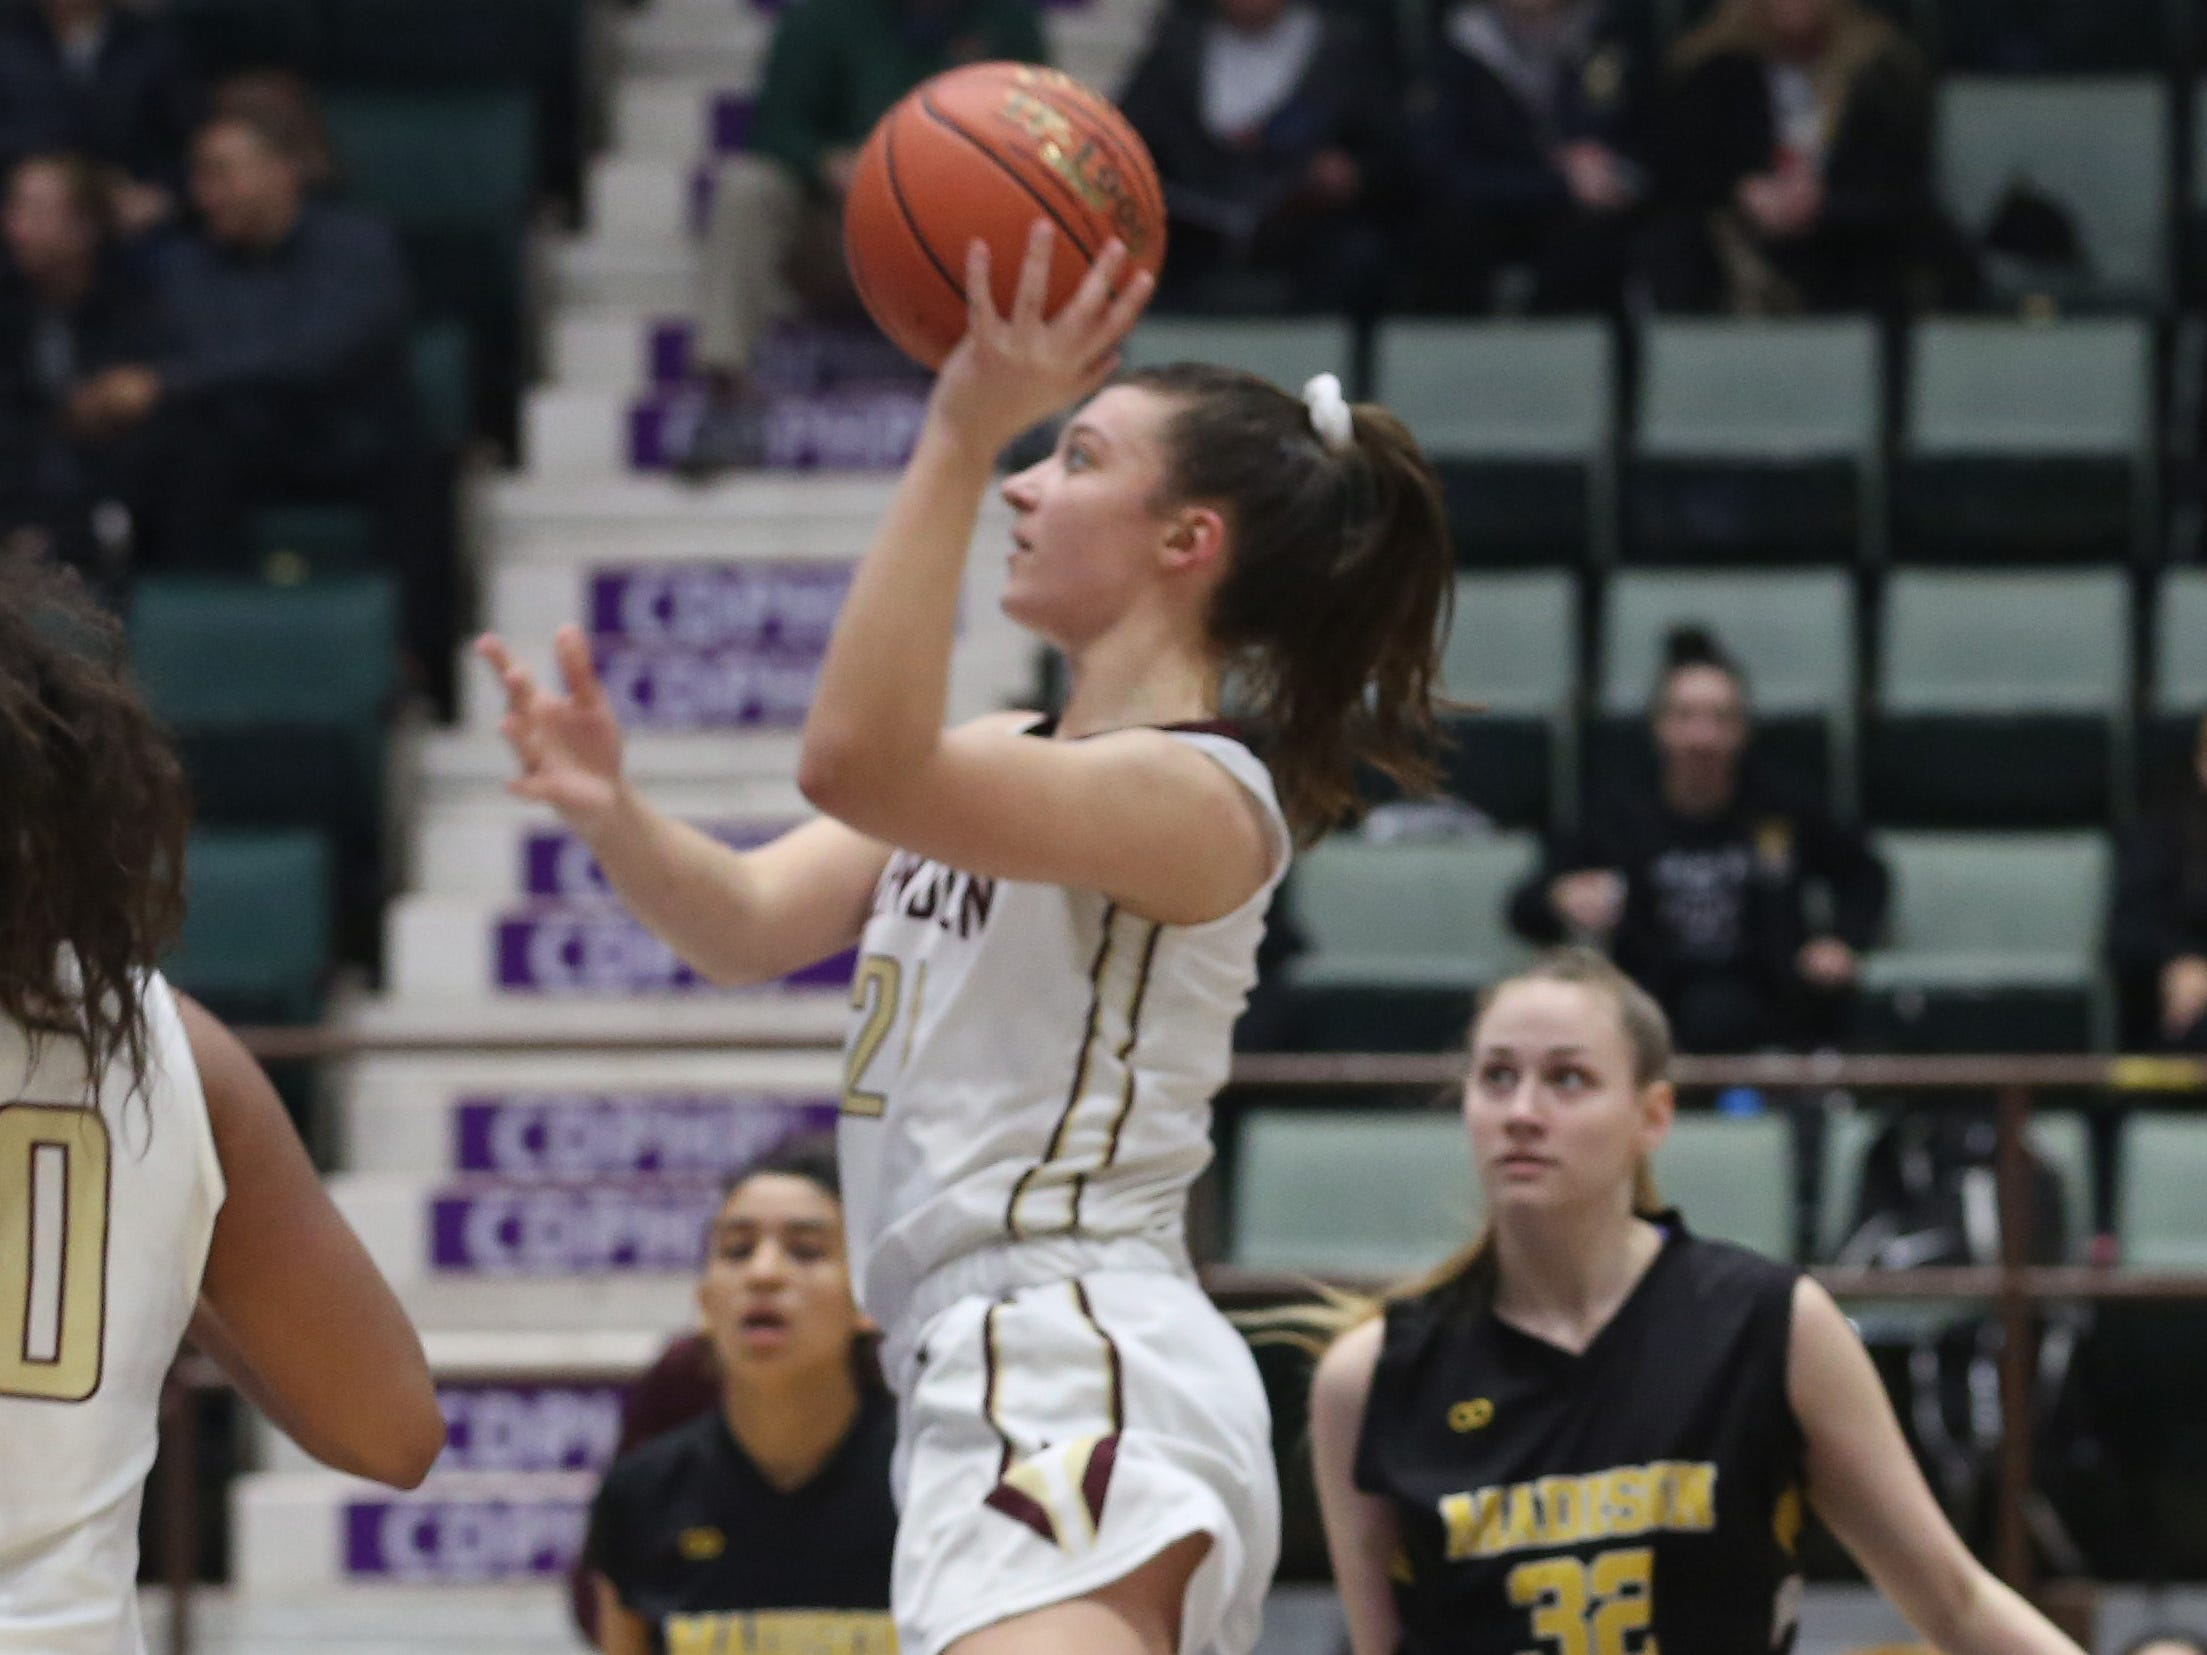 Pittsford Mendon's Alana Fursman drives to the basket against James Madison during the girls Class A semifinal in the Federation Tournament of Champions at the Cool Insuring Arena in Glens Falls March 22, 2019. Mendon won the game, 49-43.